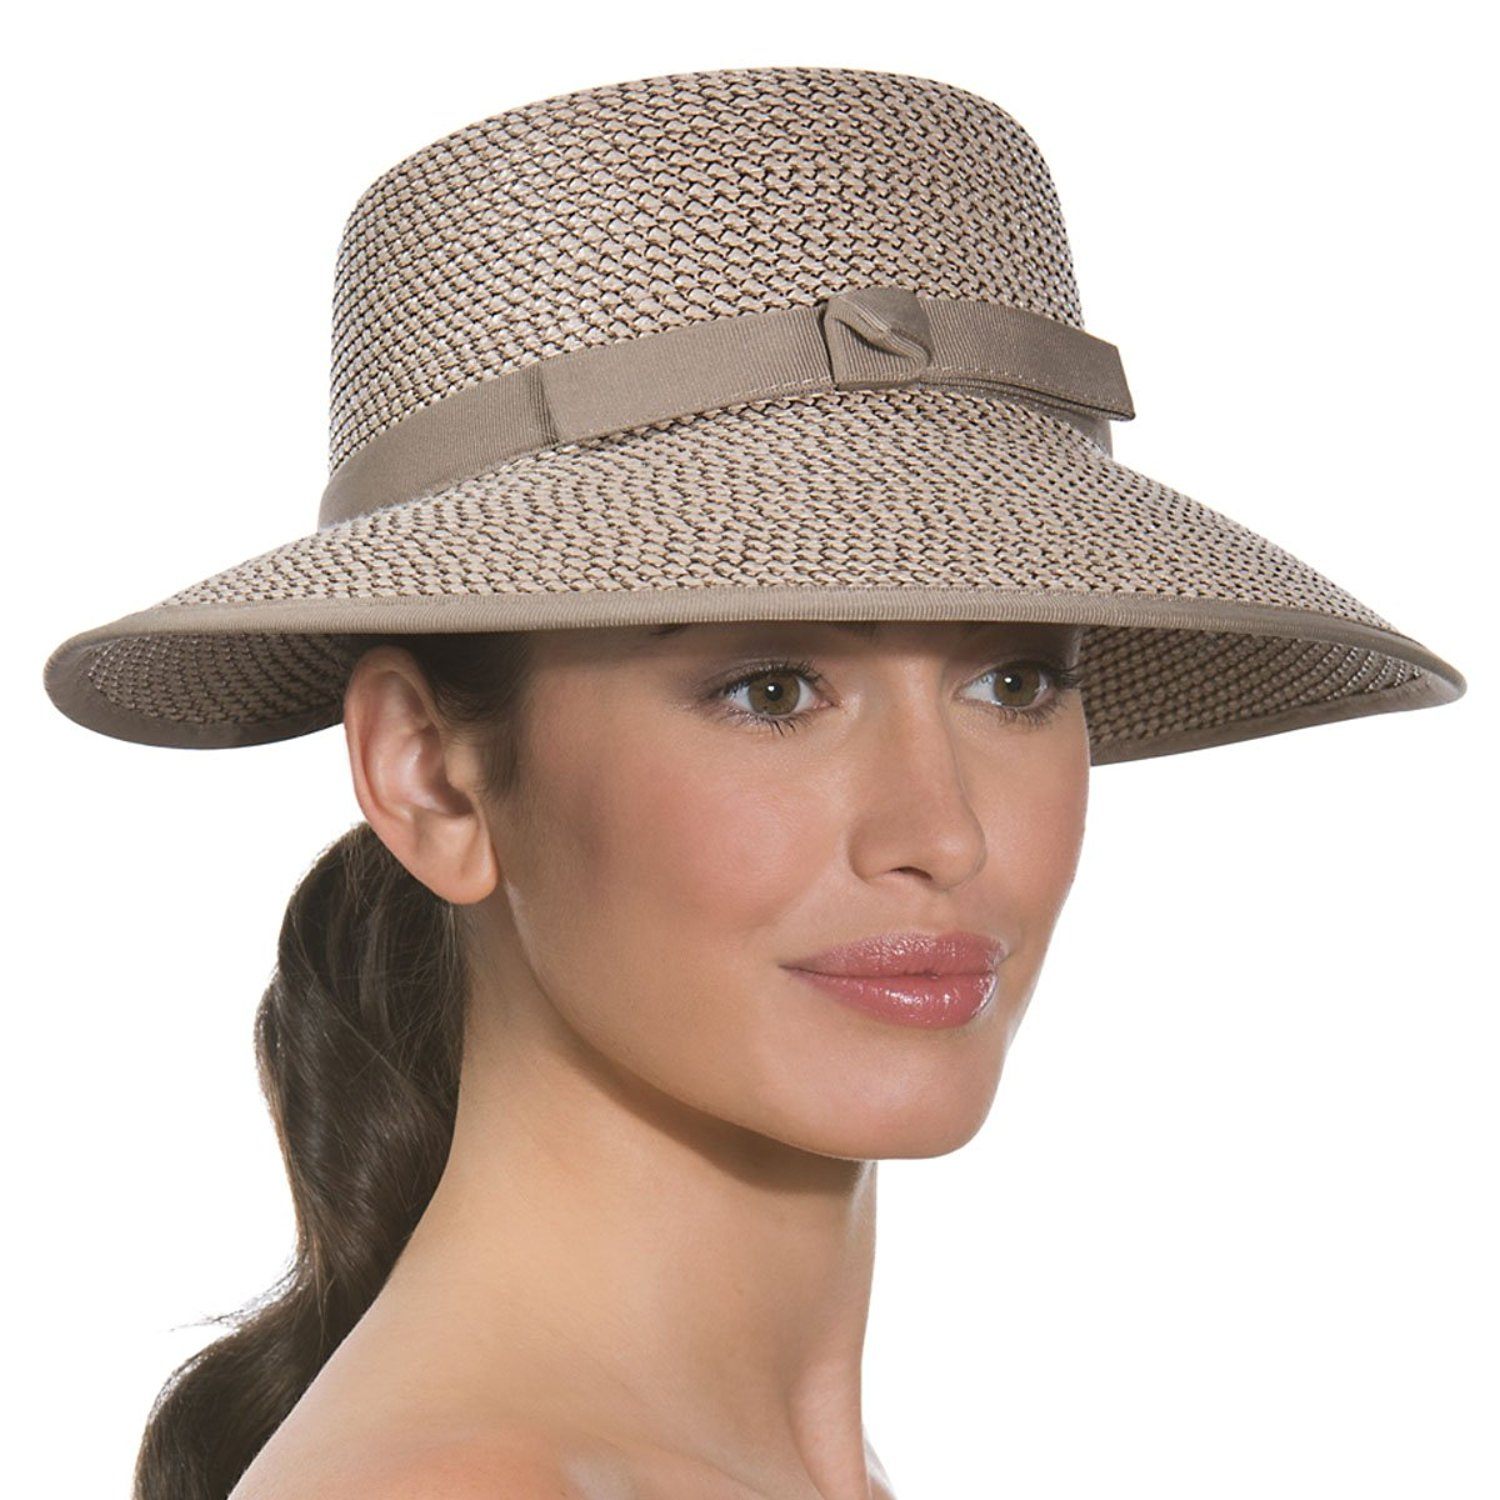 Get Quotations · Eric Javits Luxury Woman s Hat Squishee Cap (Bark) c4132bcc5b4